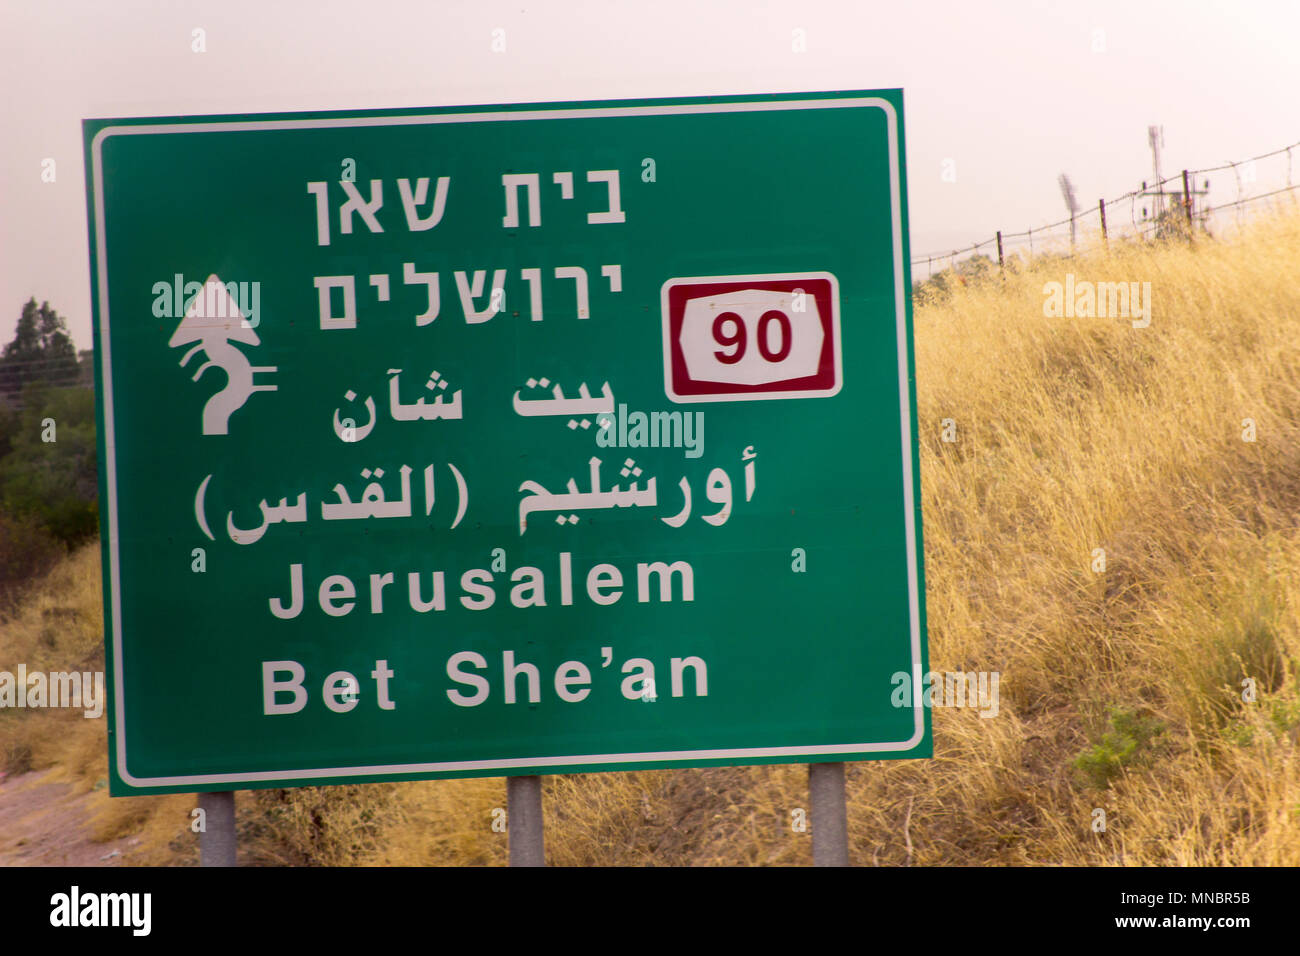 A road traffic sign for the city of Jerusalem, Israel located on the road from Qumran and taken through the window of a coach. - Stock Image